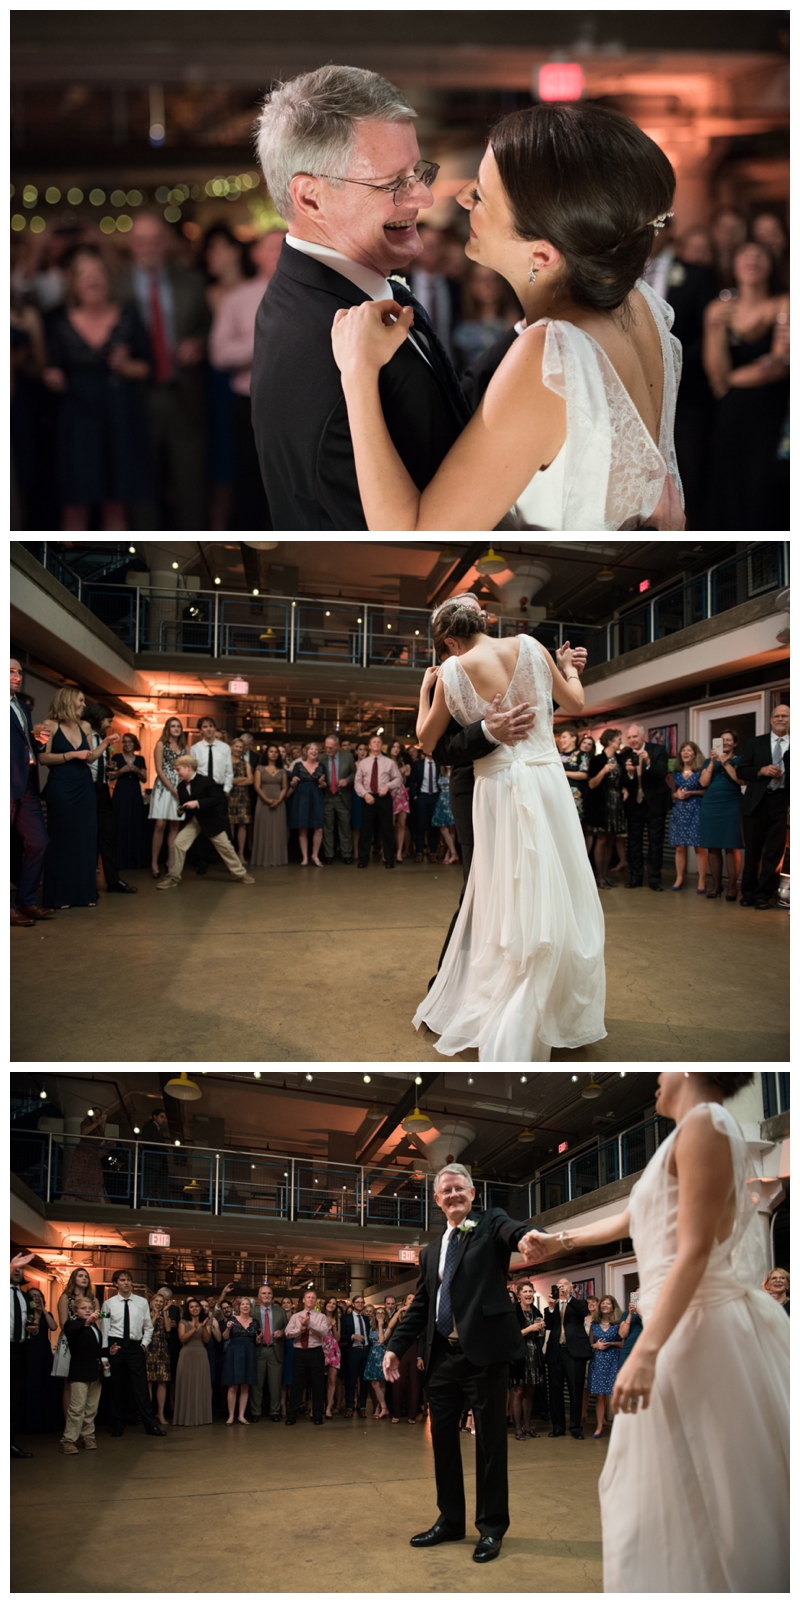 Wedding in Old Town Alexandria Virginia at the Torpedo Factory Art Center by Rachael Foster Photography_0095.jpg